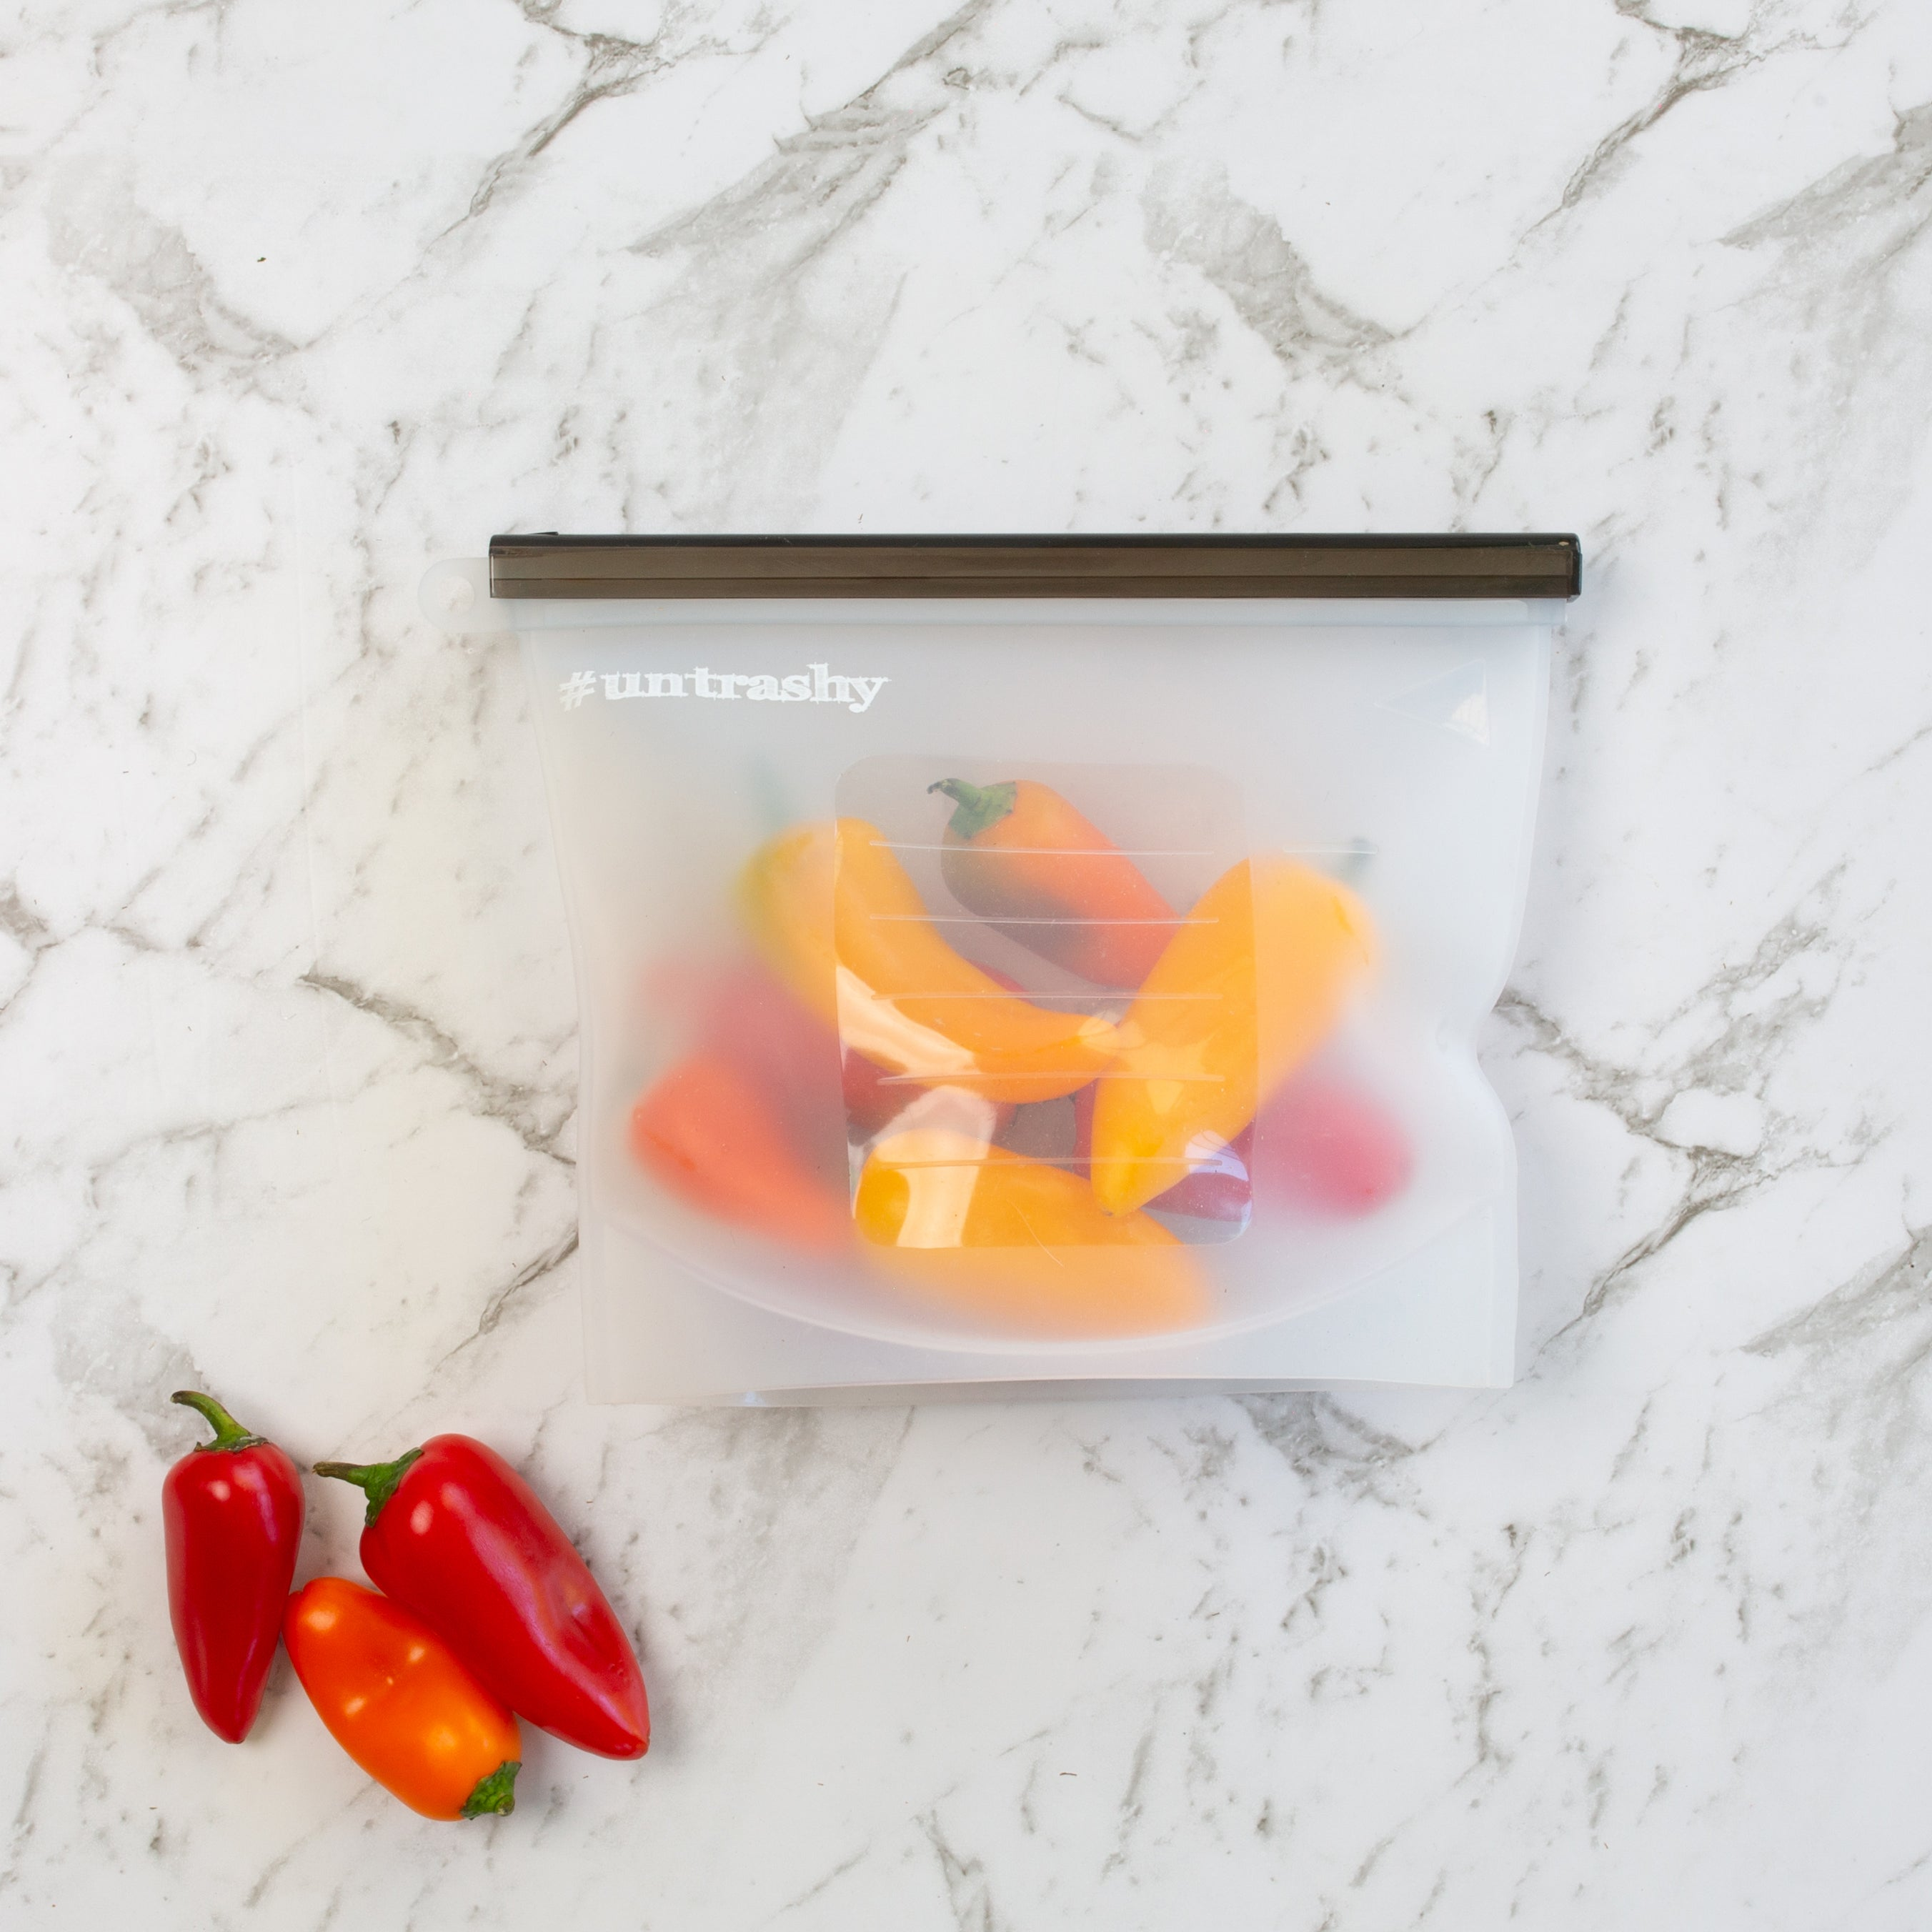 Silicone food pouch containing red and yellow chillis